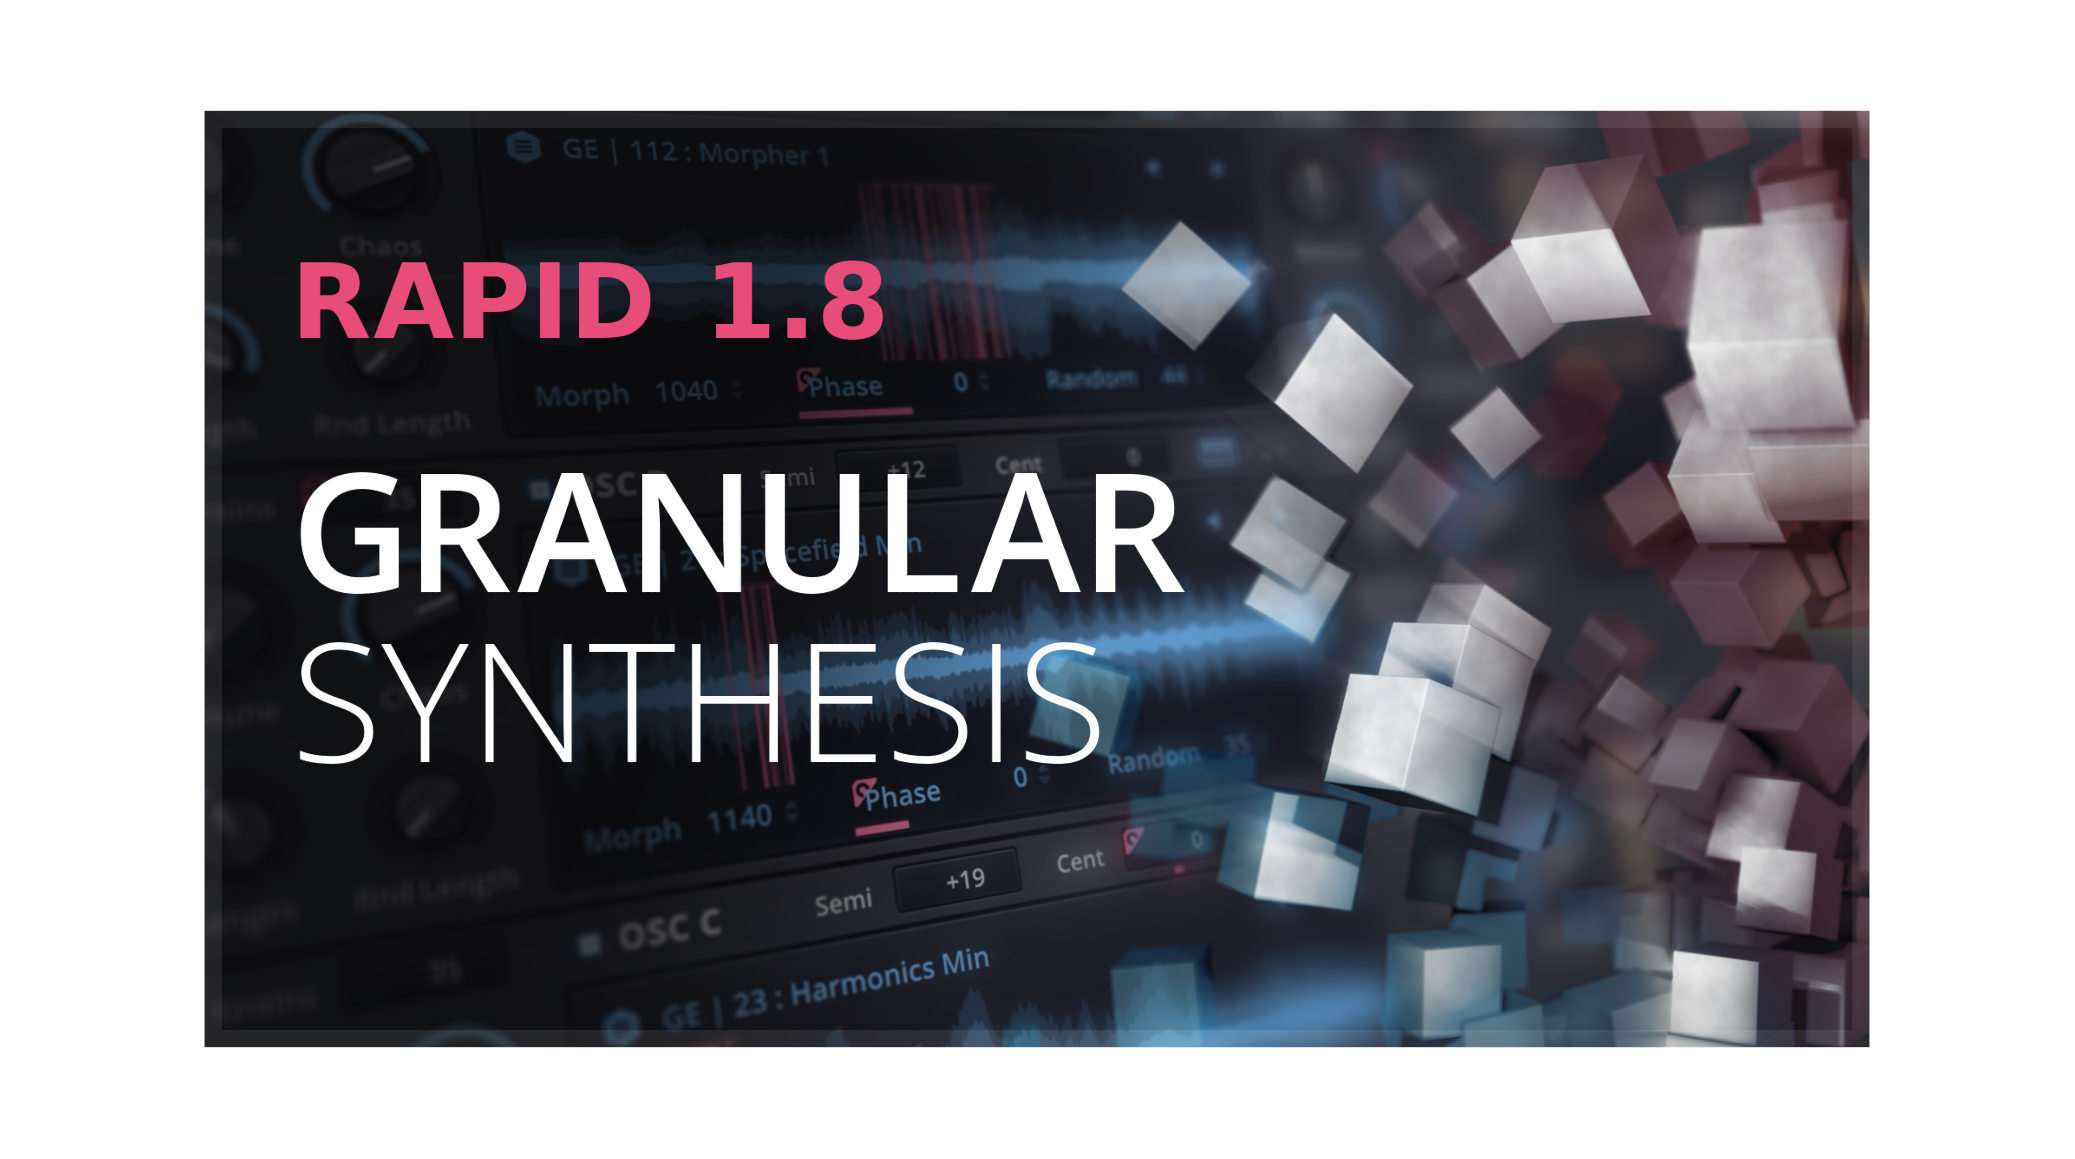 RAPID 1.8 - Granular Synthesis